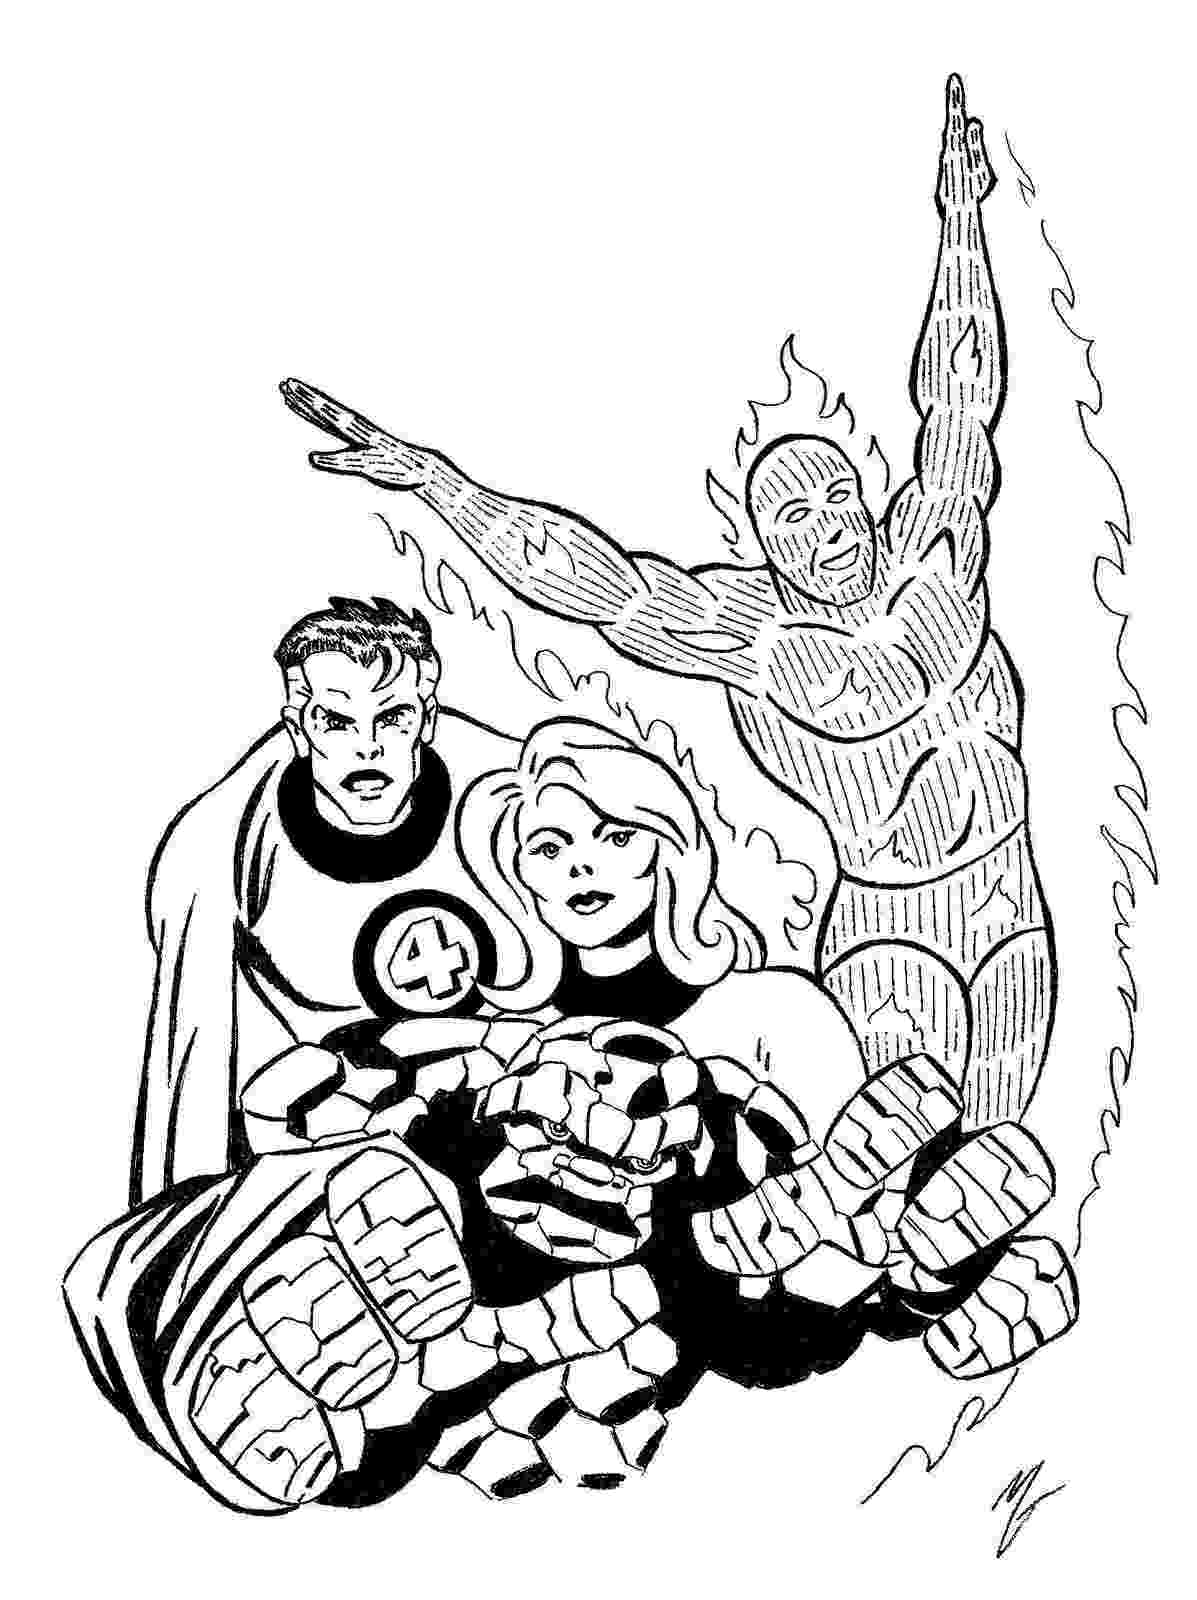 fantastic 4 coloring pictures invisible woman 17 superheroes printable coloring pages fantastic coloring pictures 4